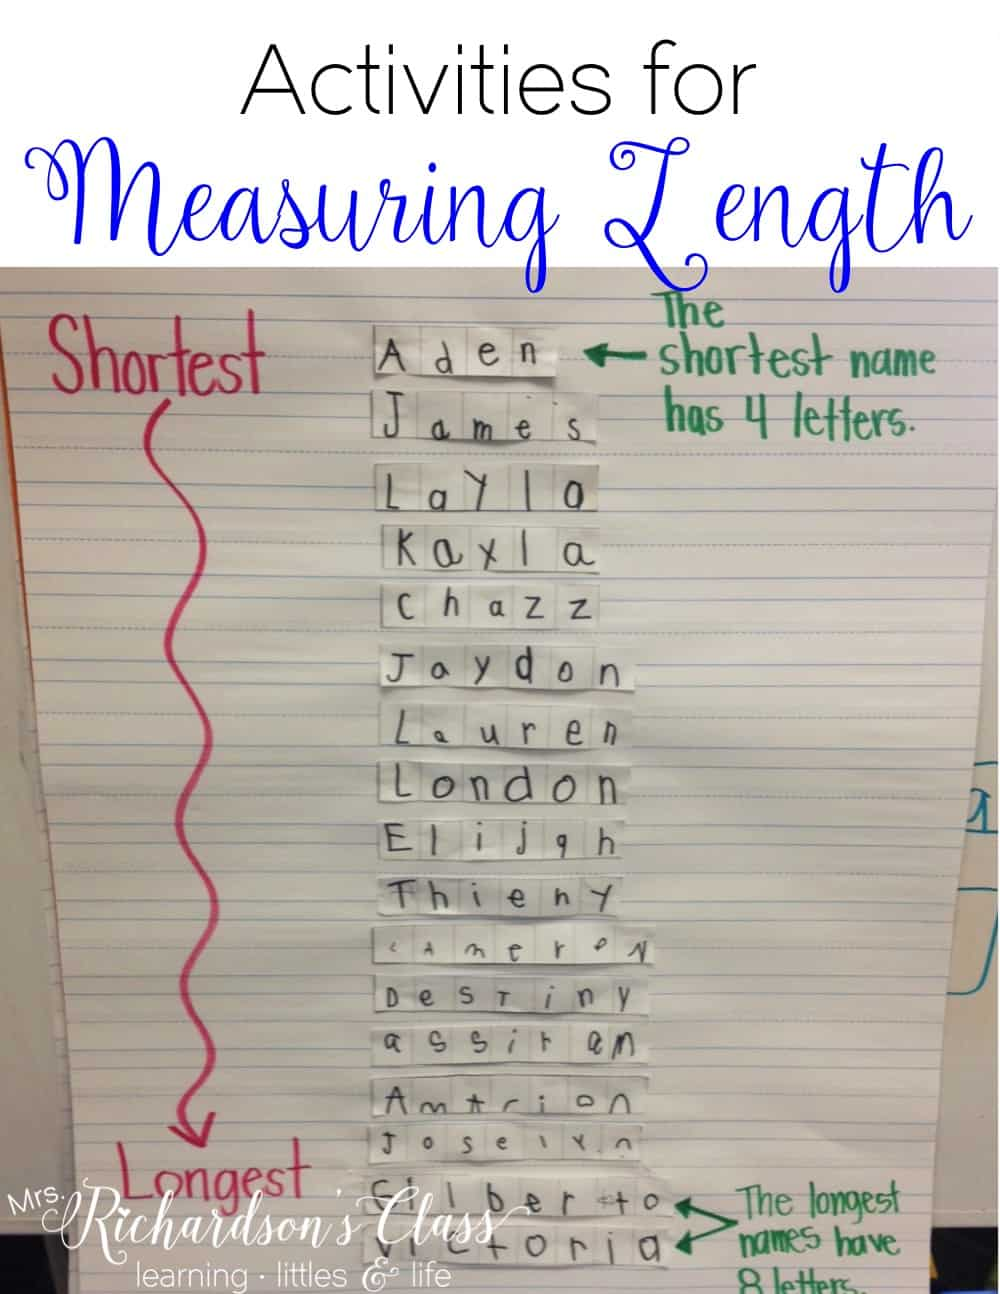 Measuring Length activities that are PERFECT for little learners! My students loved this name activity, too! 23w